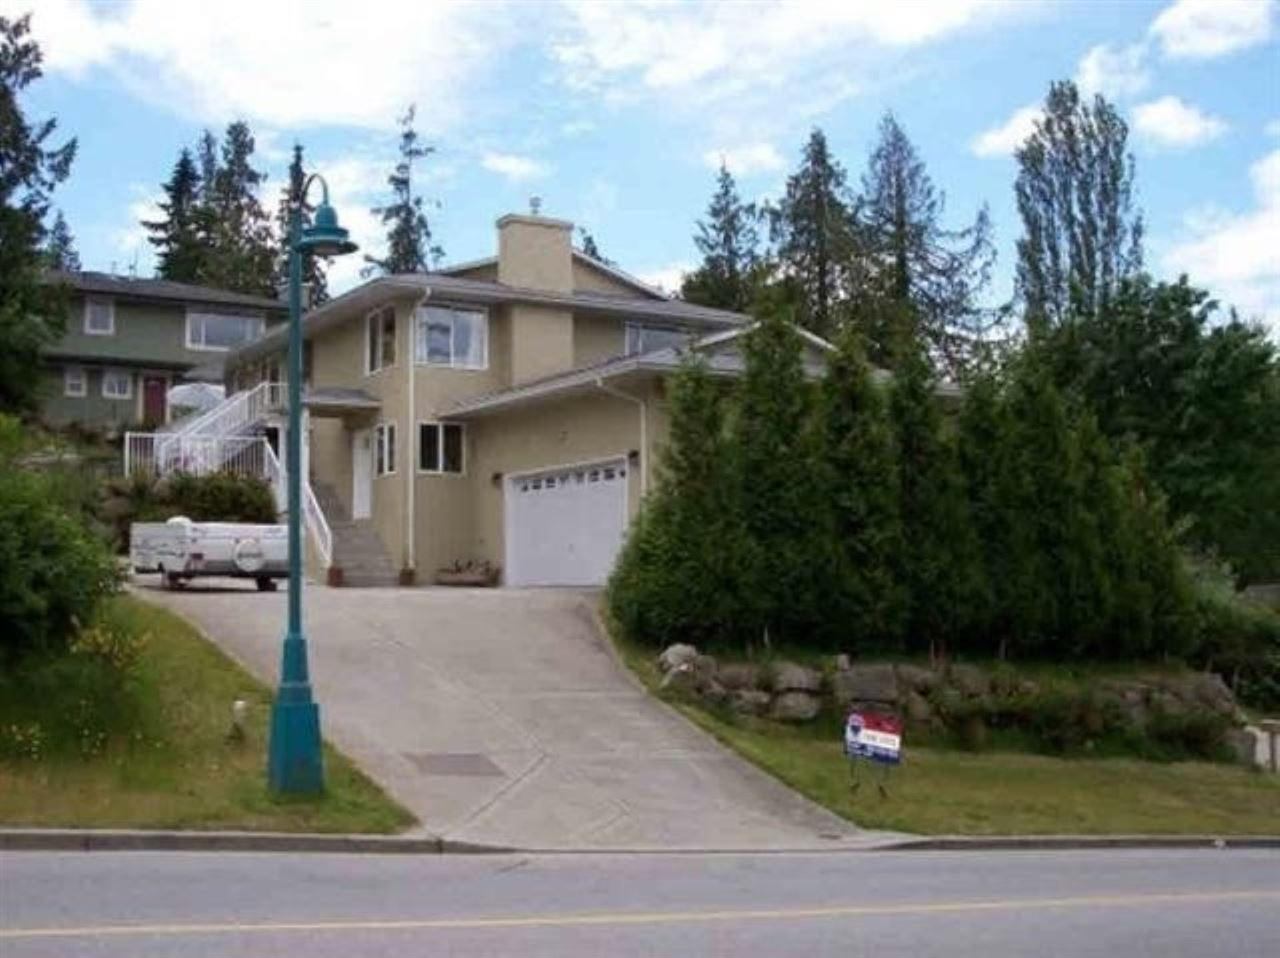 5829 TRAIL AVENUE - Sechelt District House/Single Family for sale, 5 Bedrooms (R2482143) - #1